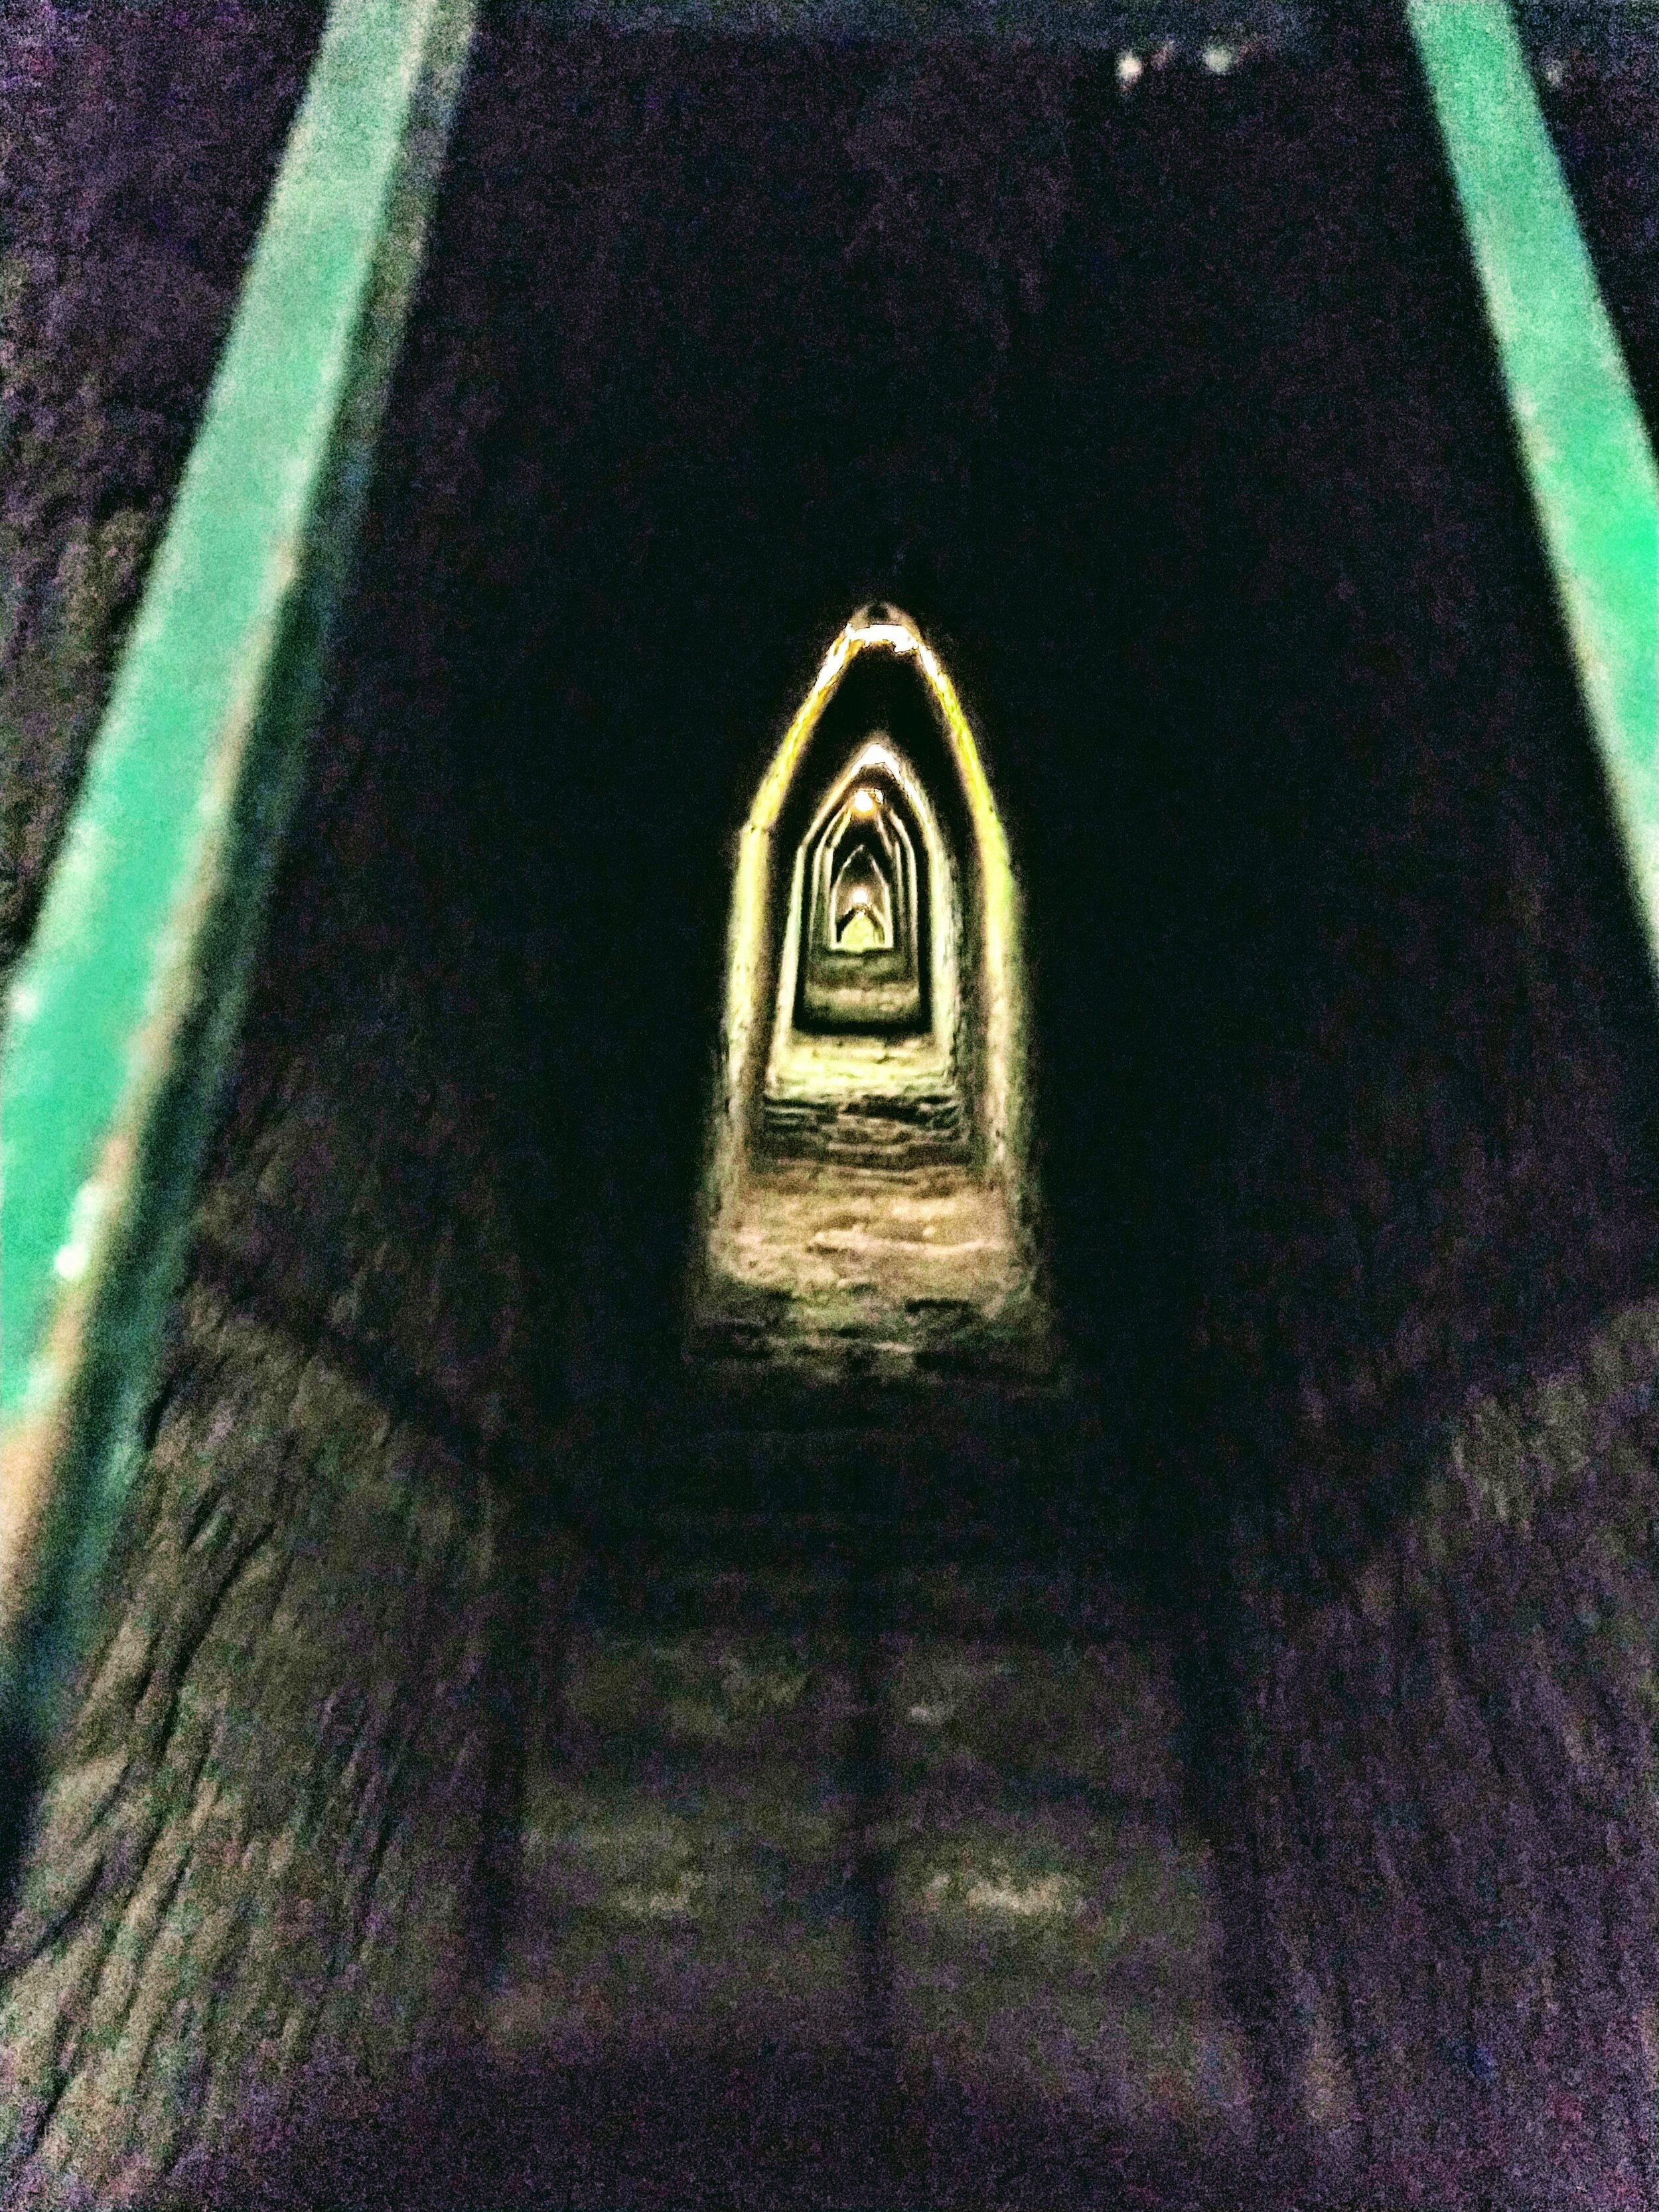 Tunnels under the pyramid in Cholula, MX